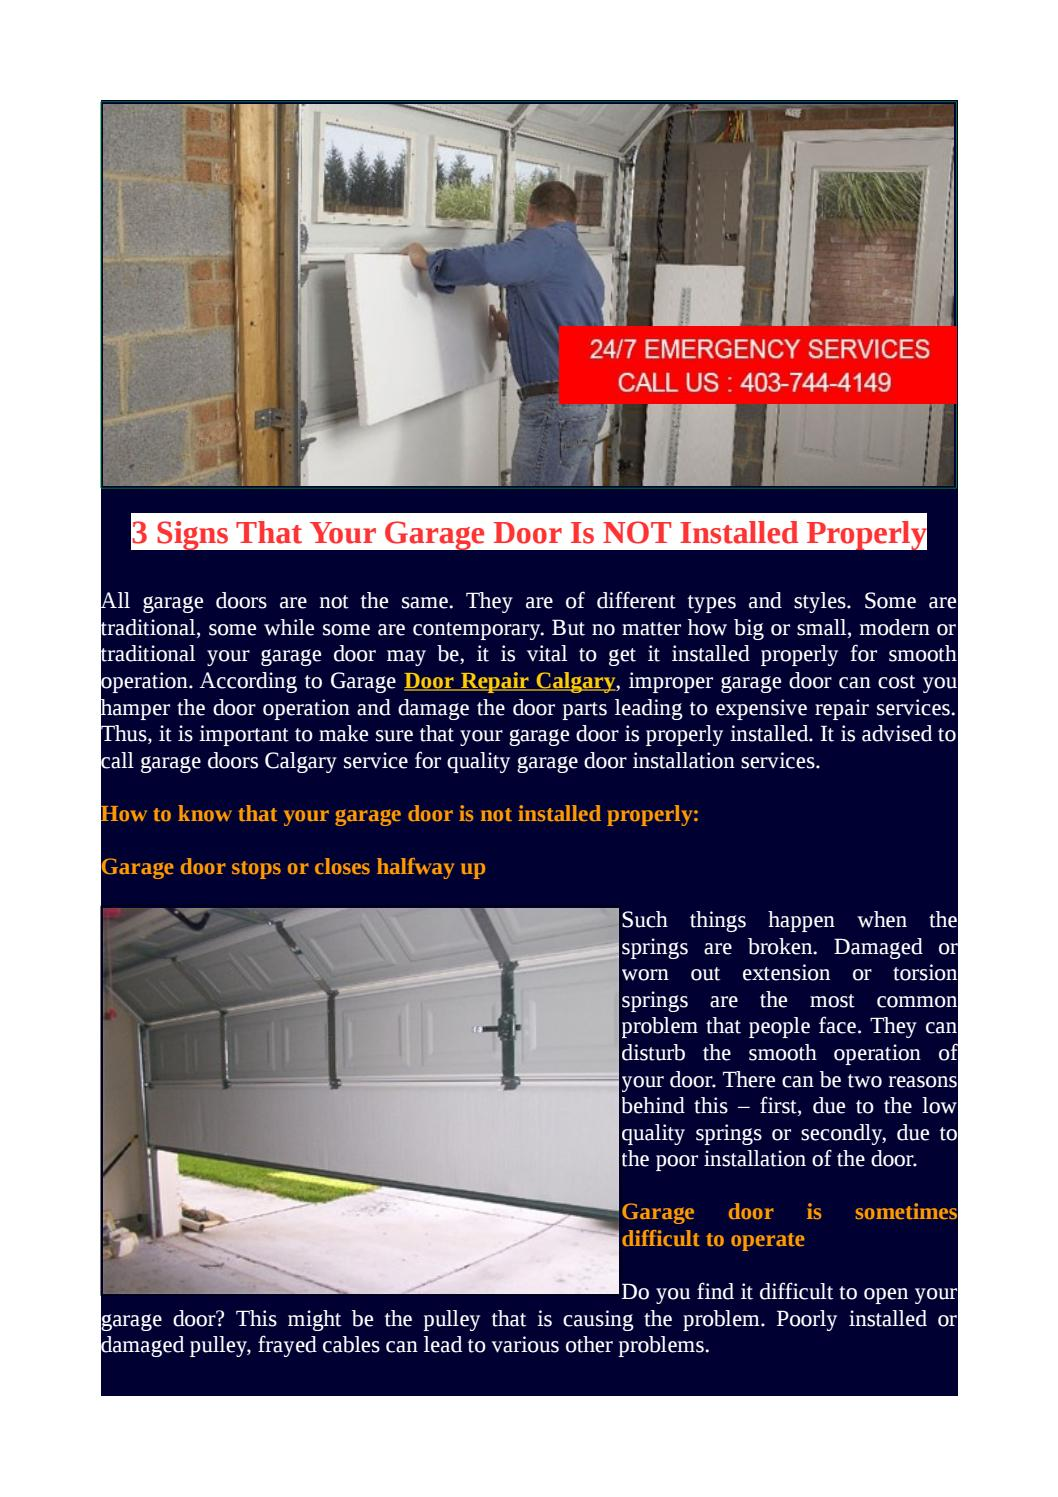 3 Signs That Your Garage Door Is Not Installed Properly By Garage